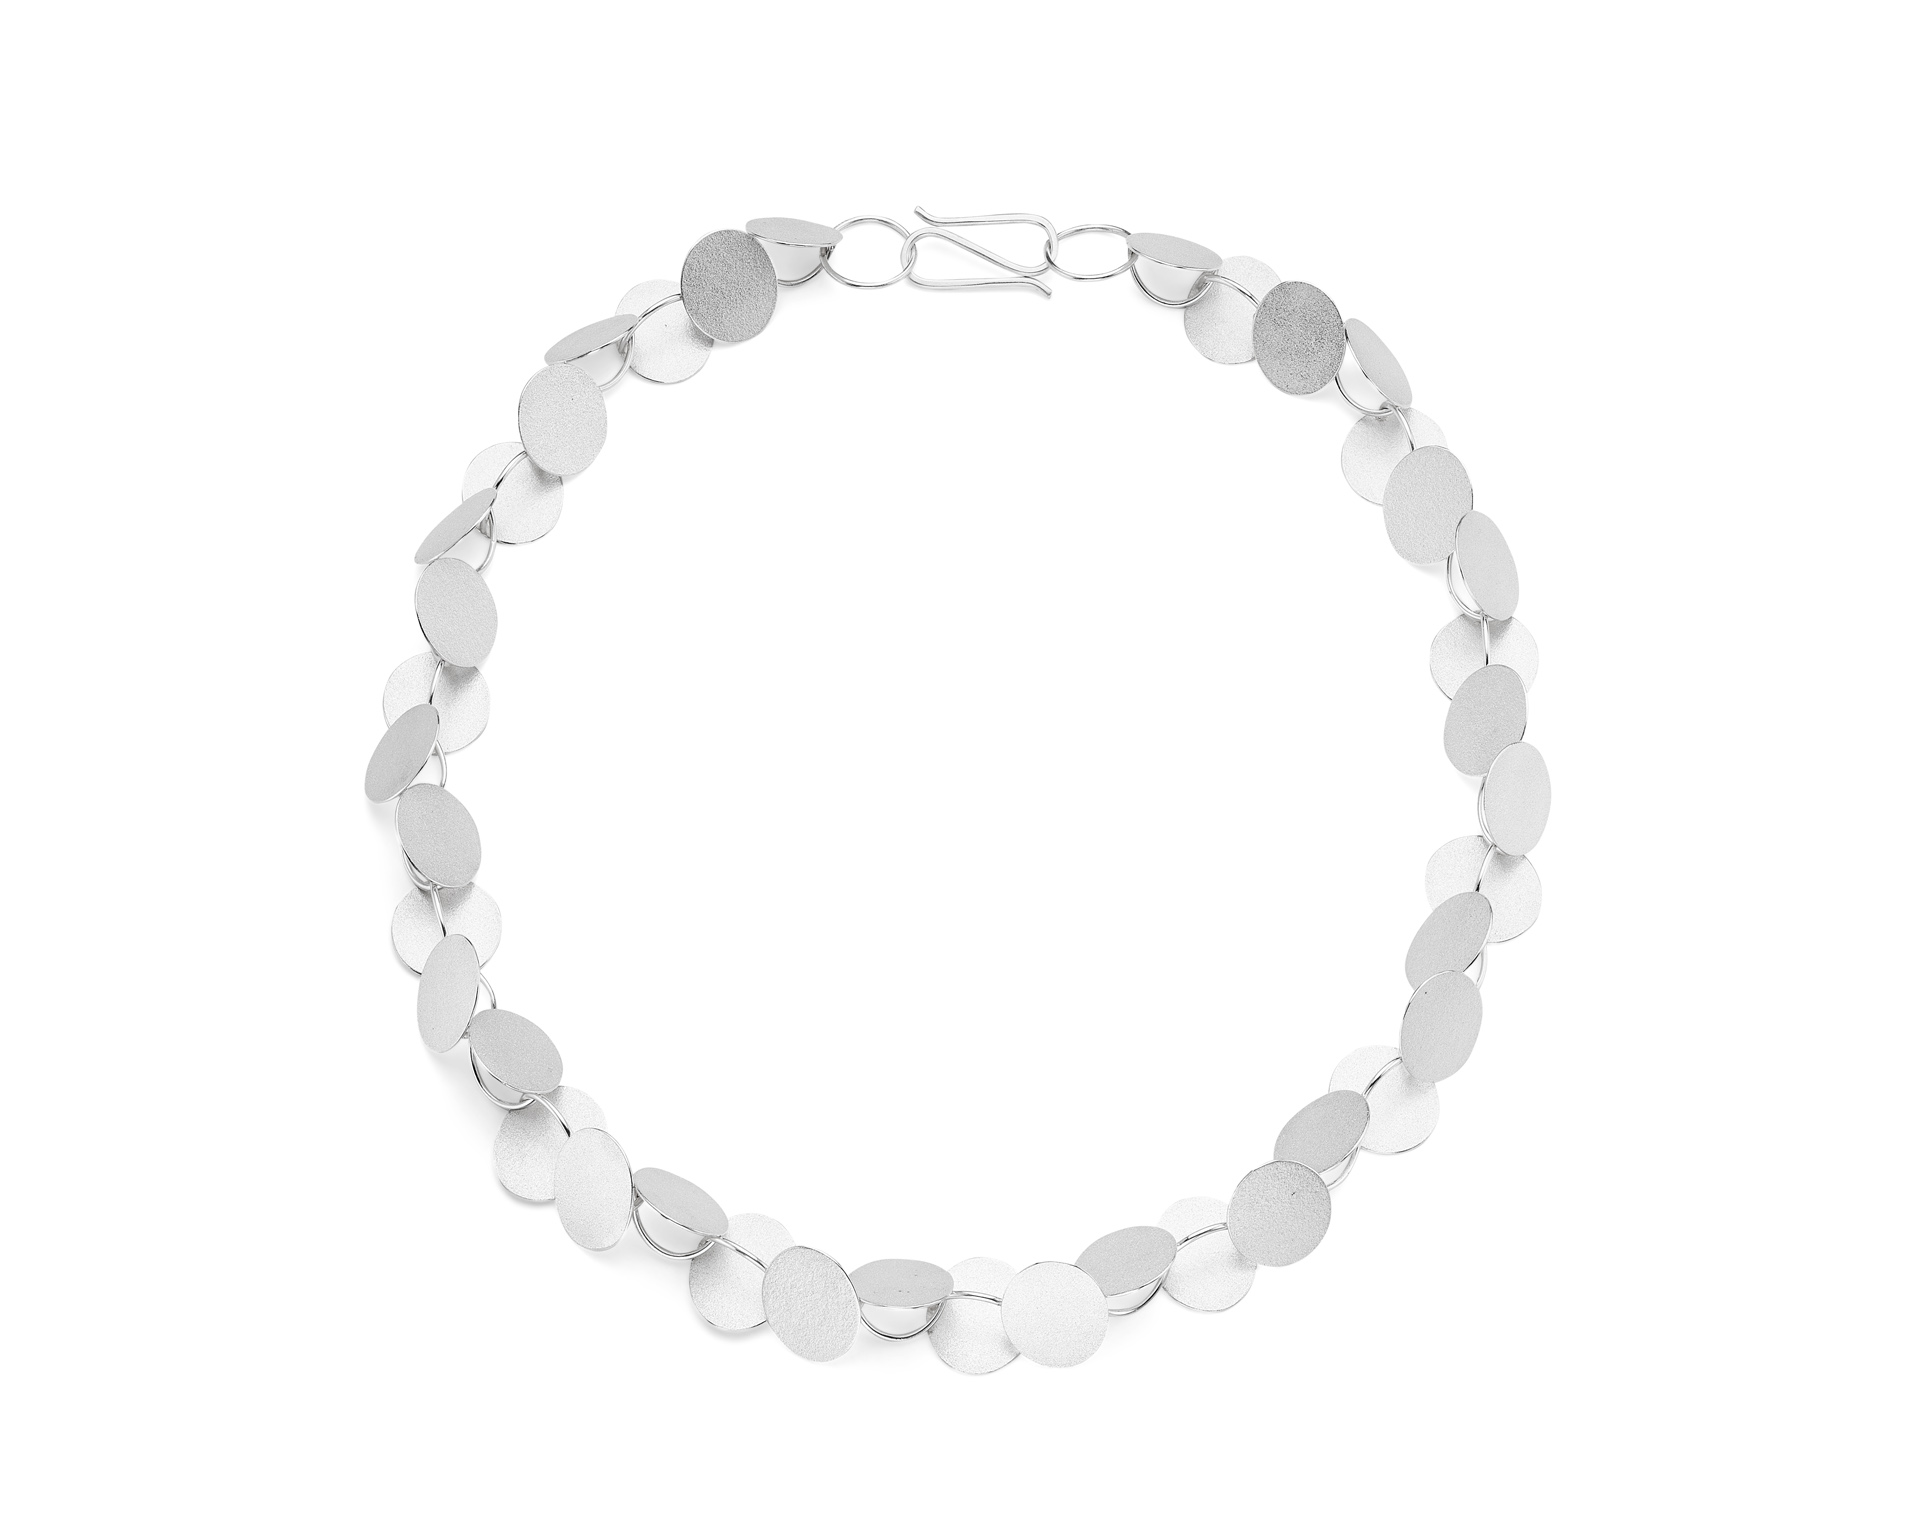 Heather Woof Jewellery.  Rhythm necklace in silver.